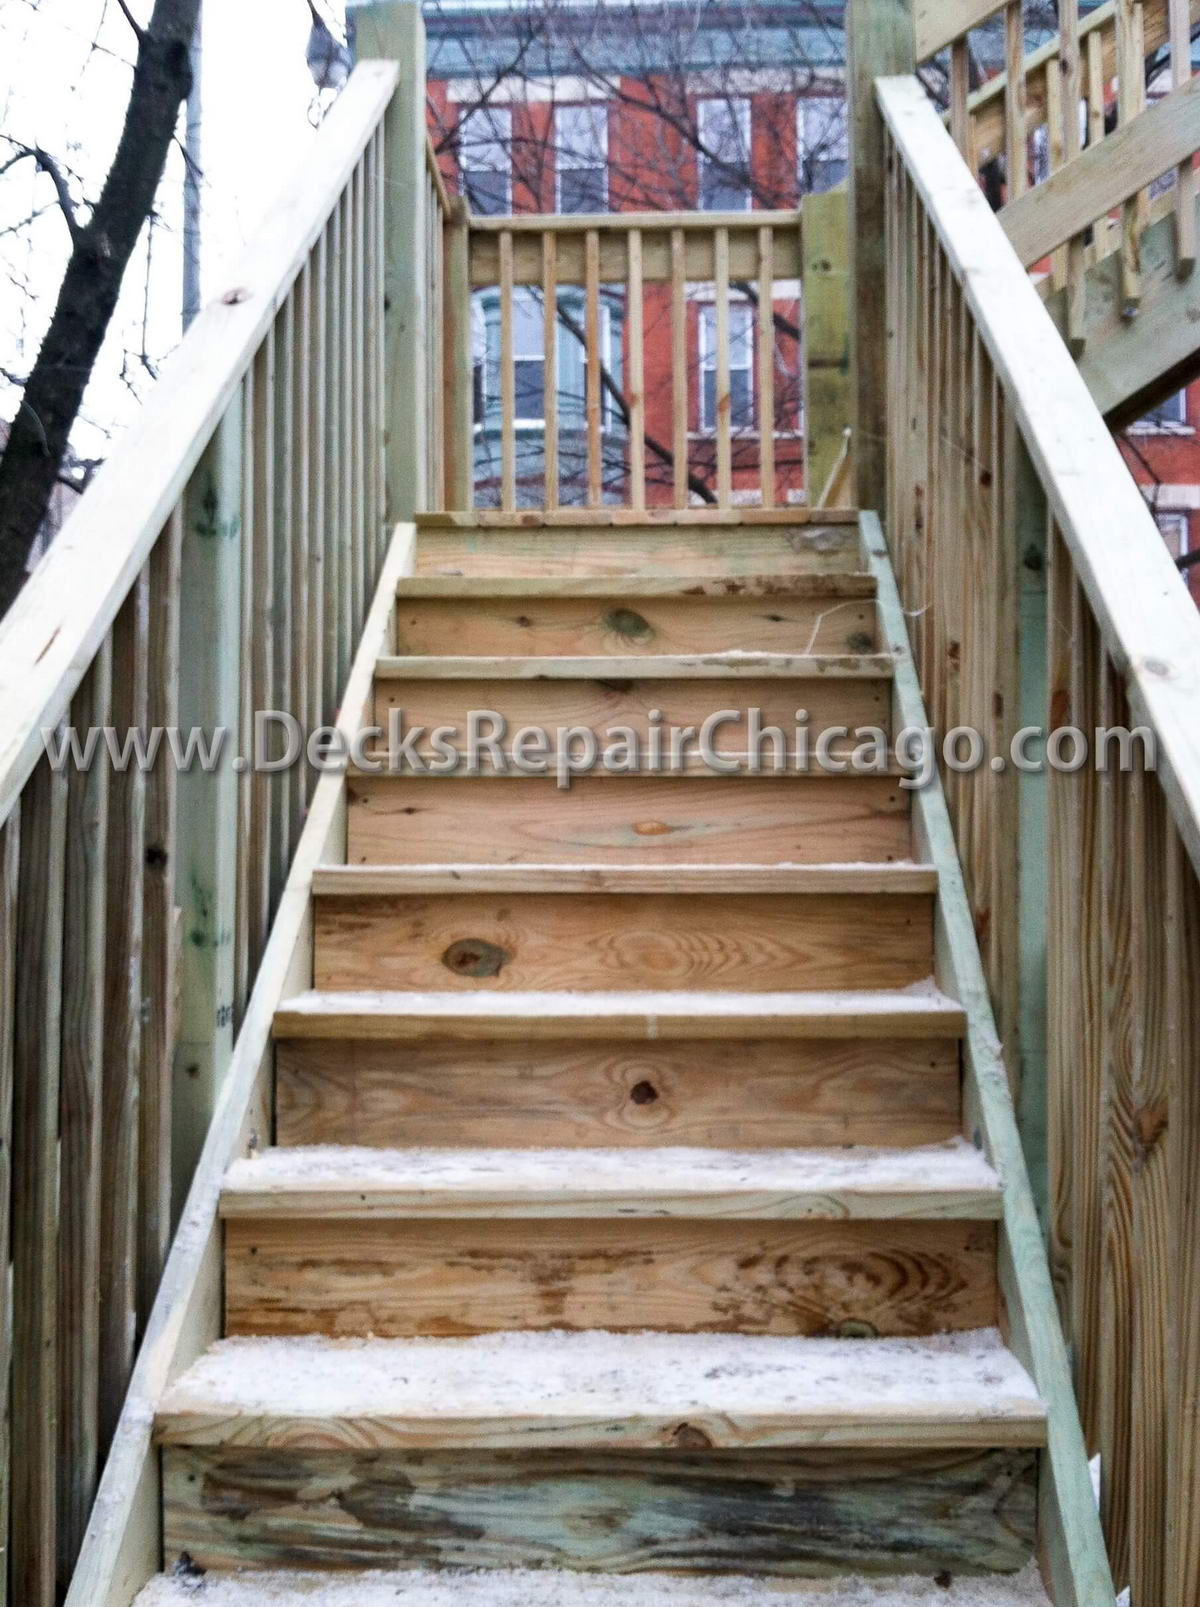 decks-repair-chicago-buff-construction-18_resize.jpg